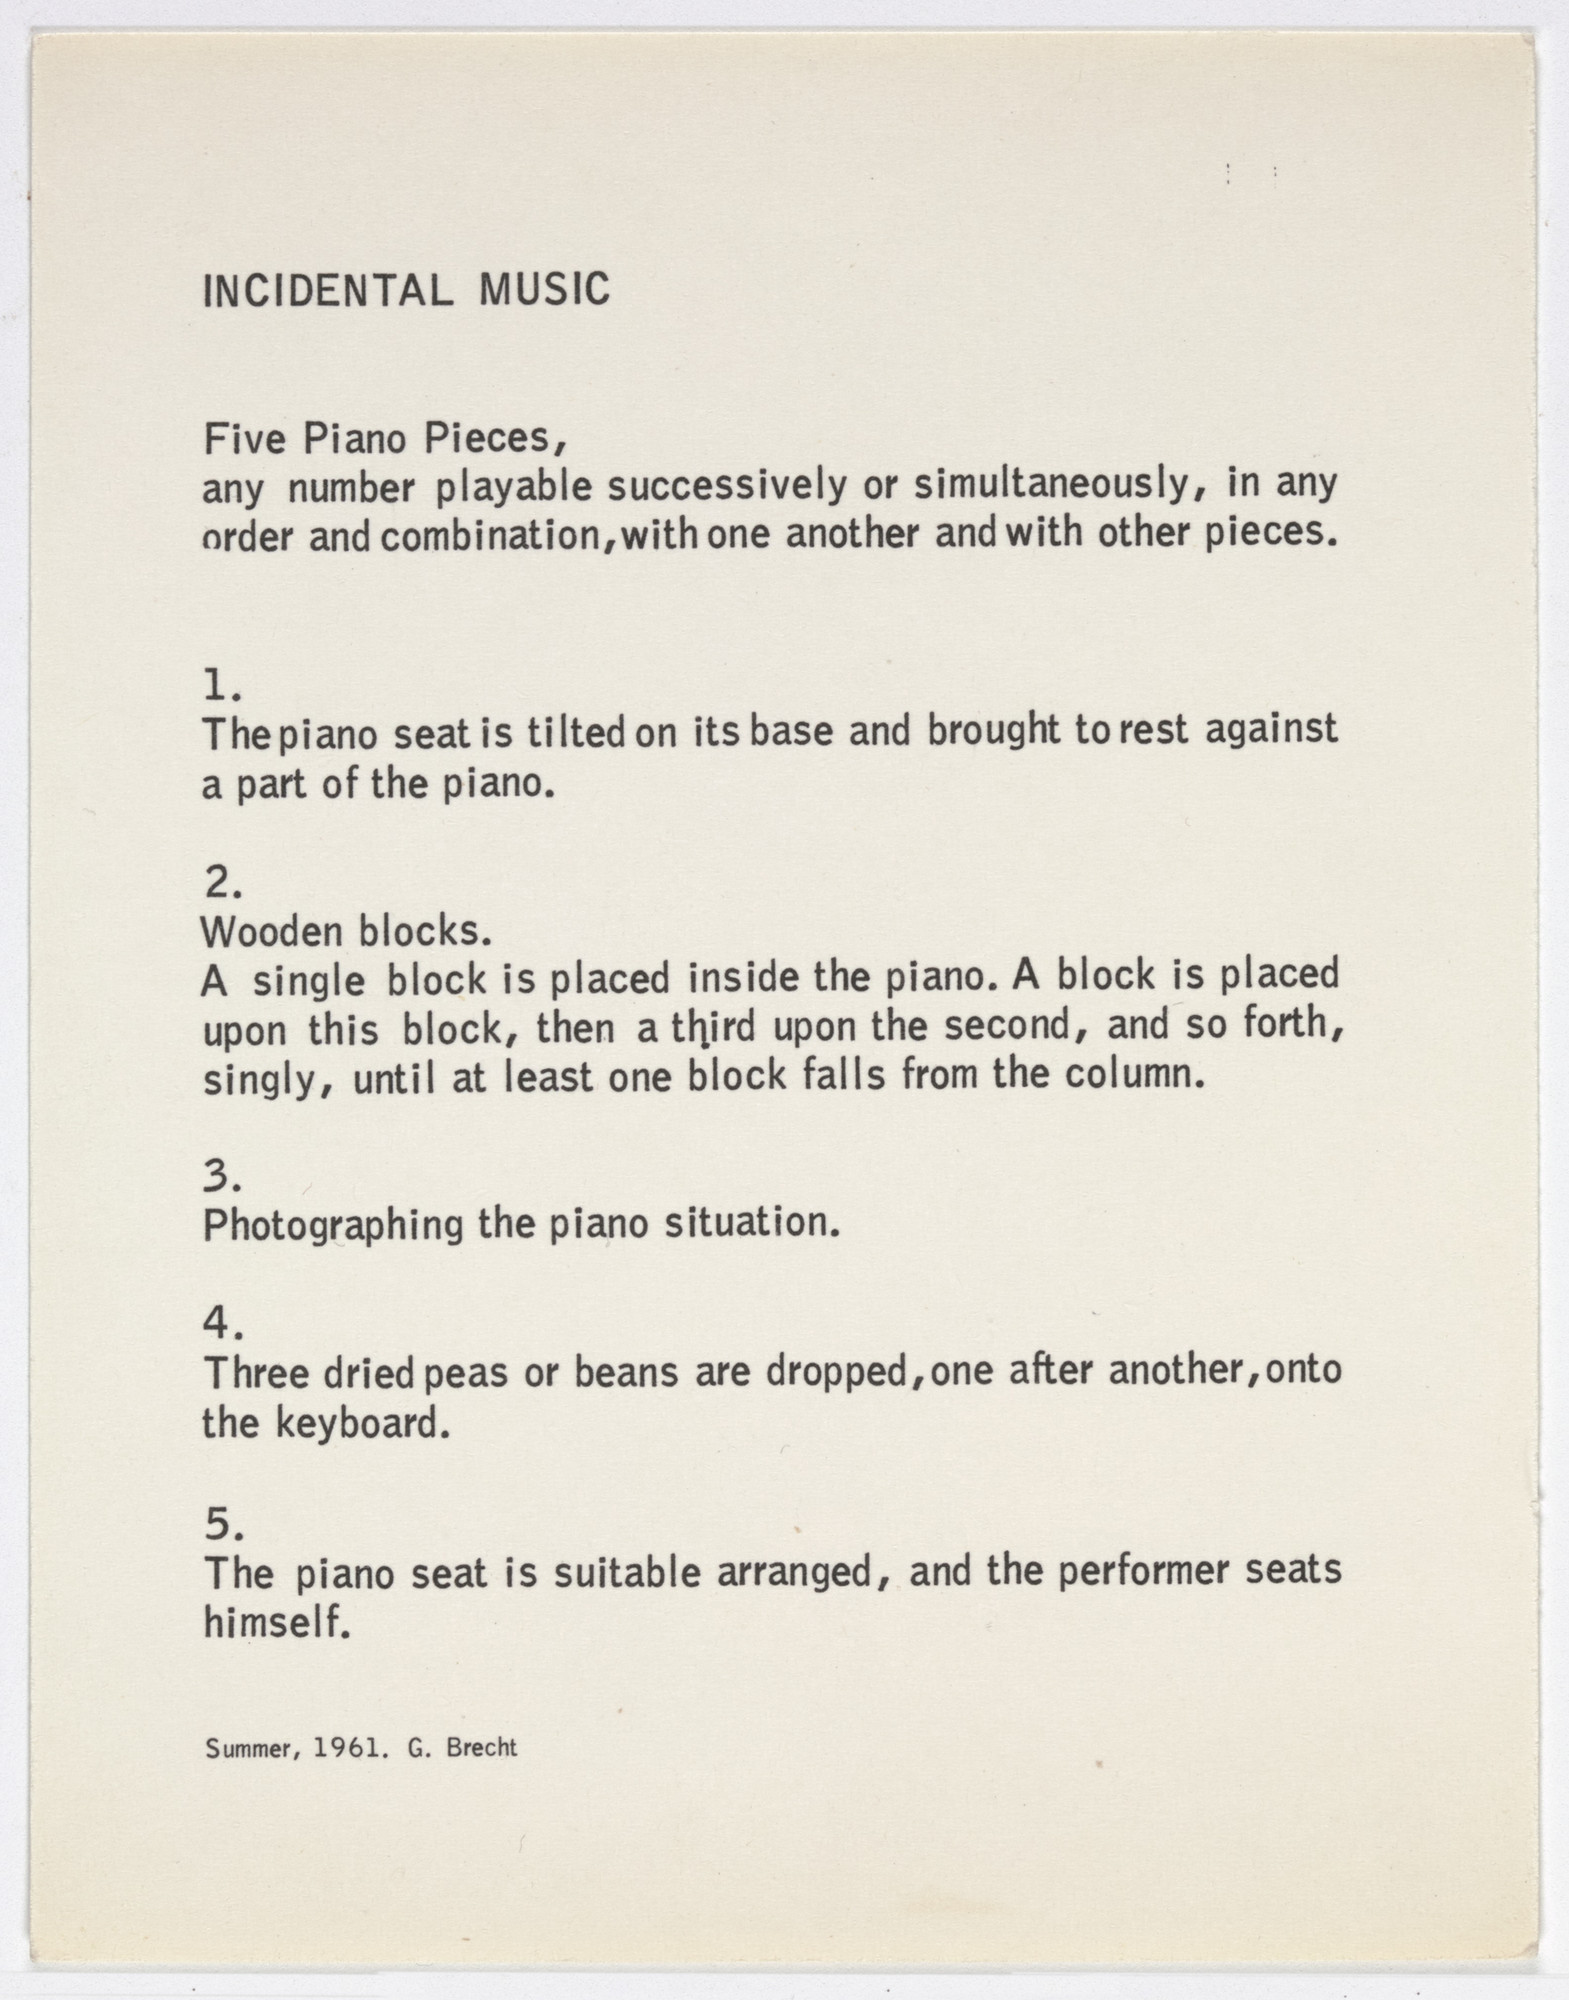 George Brecht. Incidental Music from Water Yam. 1961